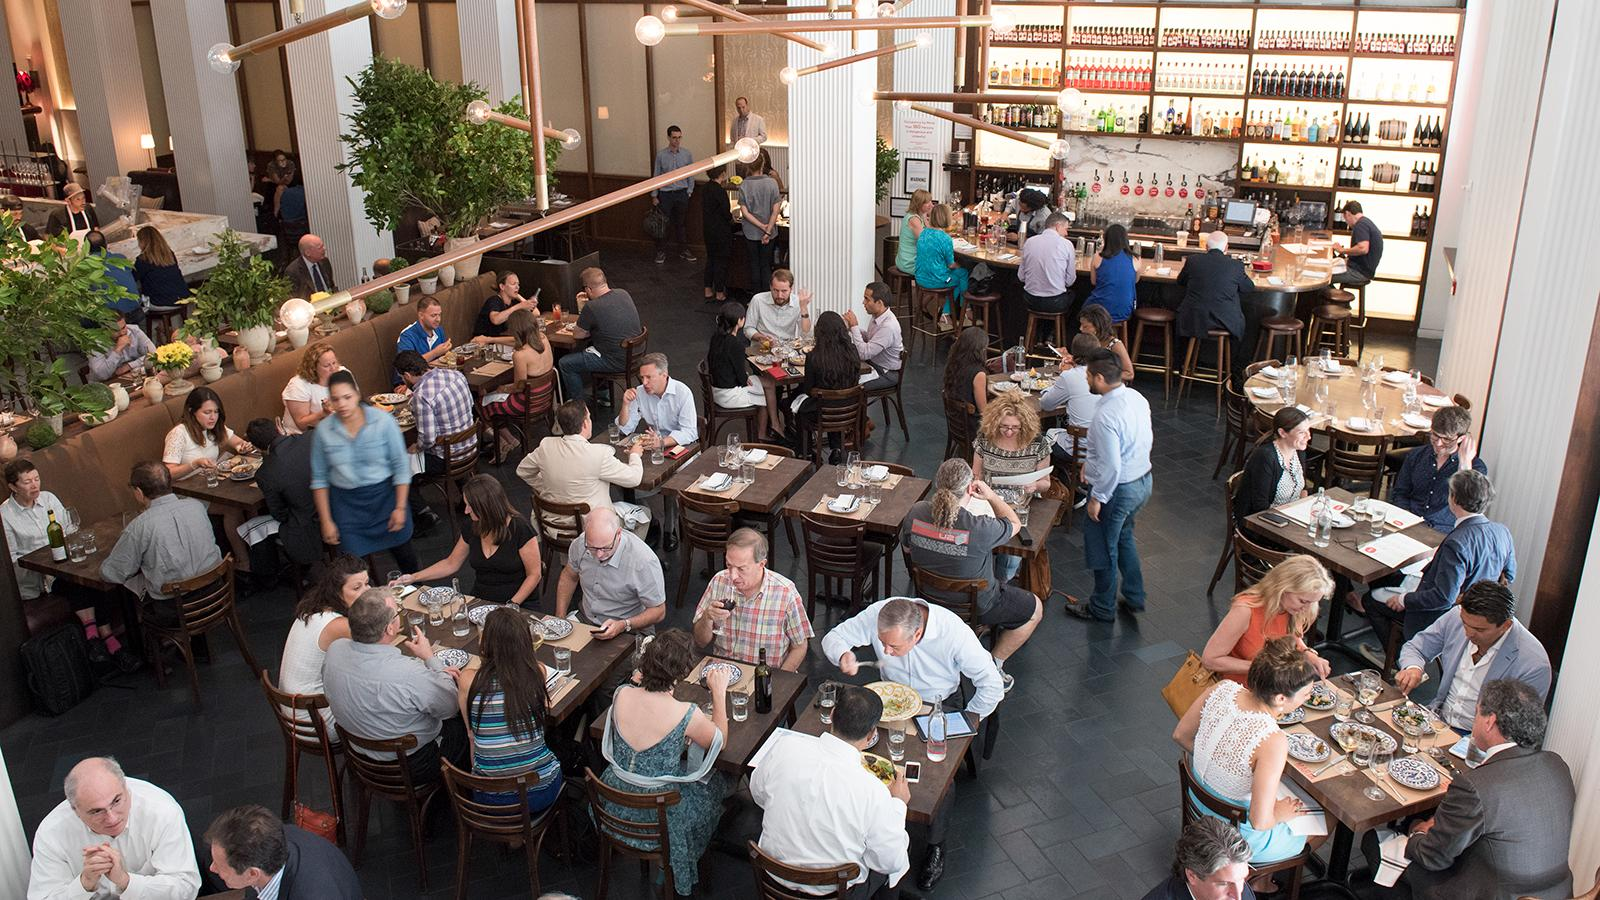 Overhead view of guests dining